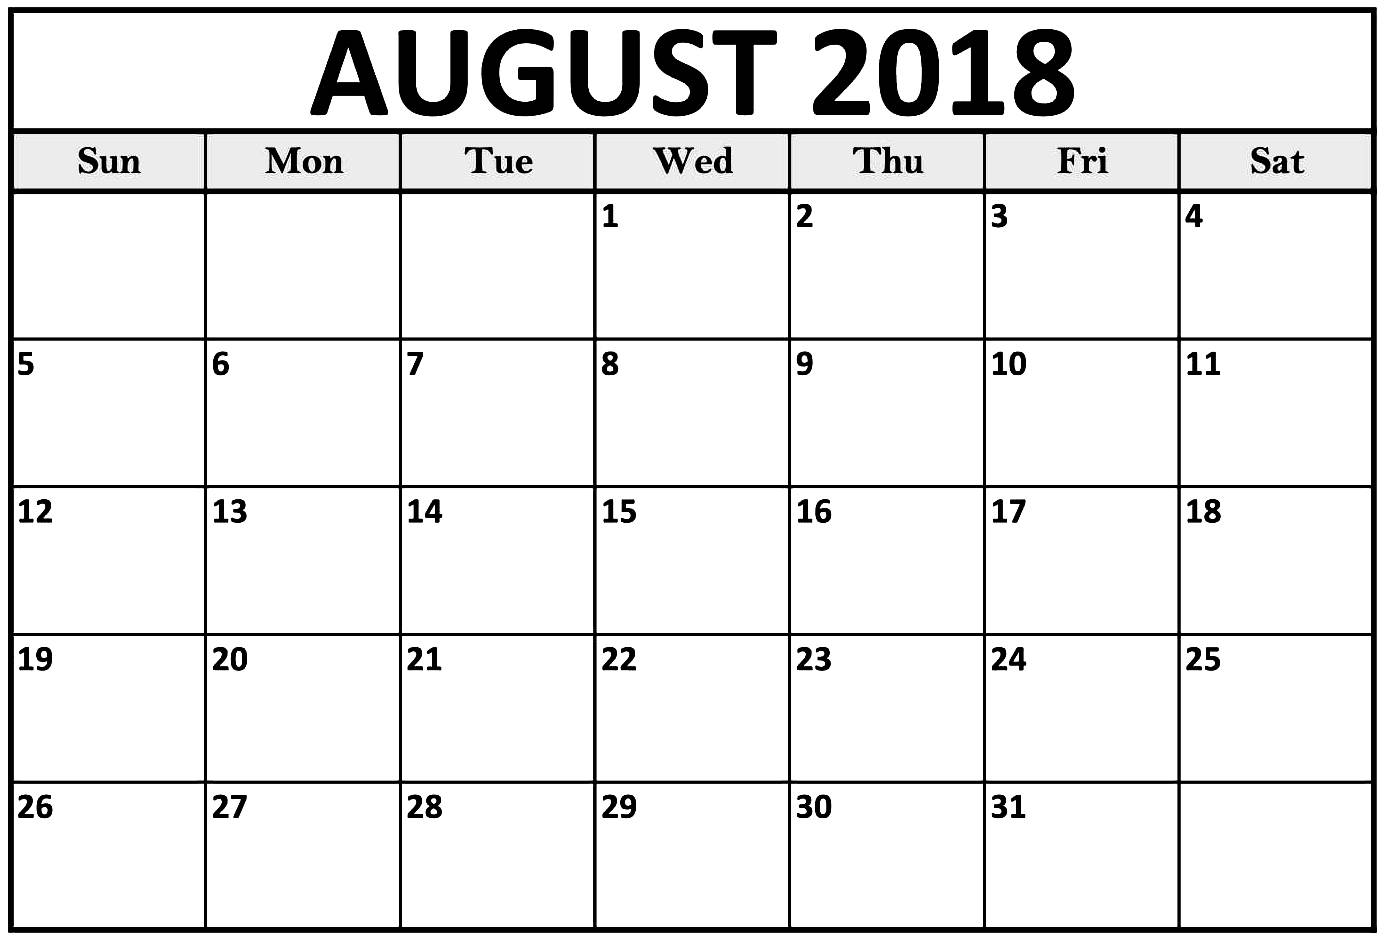 monthly calendar august 2018 printable template Printable Monthly Calendar For Aug 2018 erdferdf